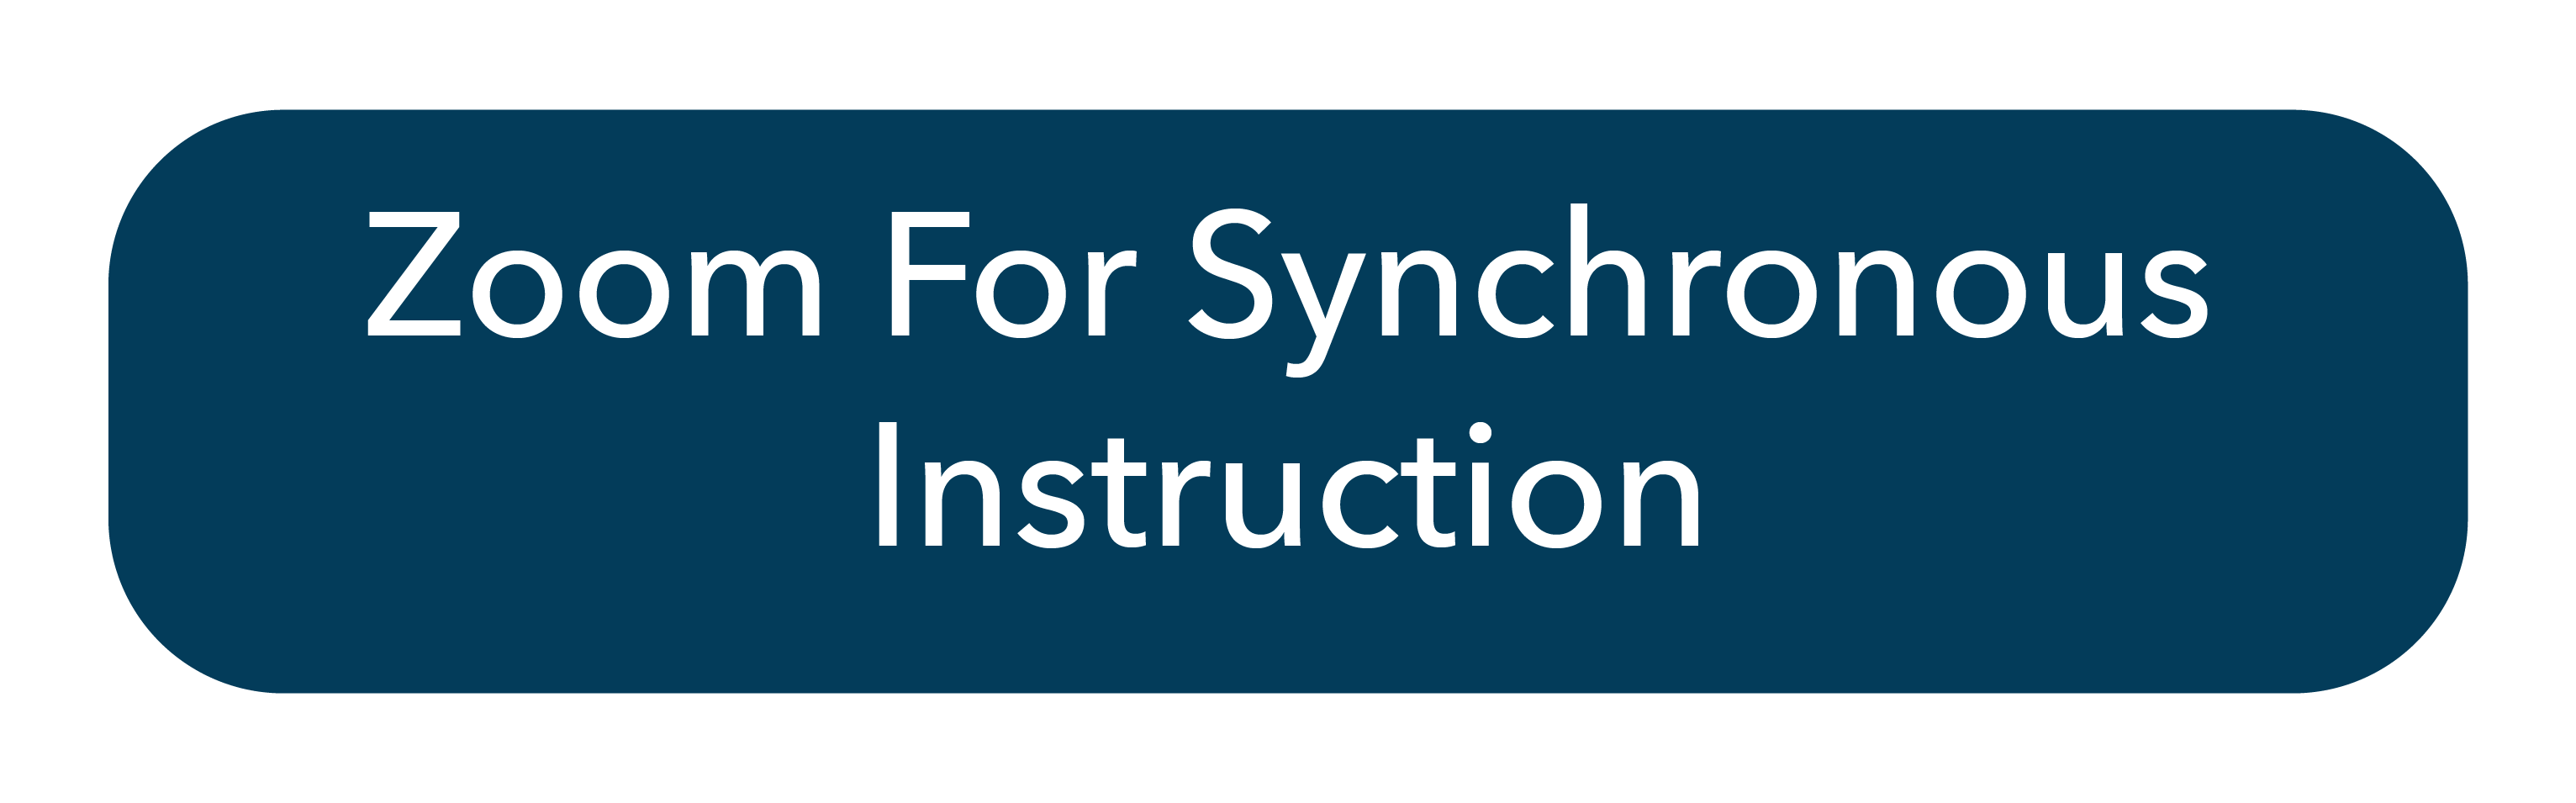 Zoom for Synchronous Instruction